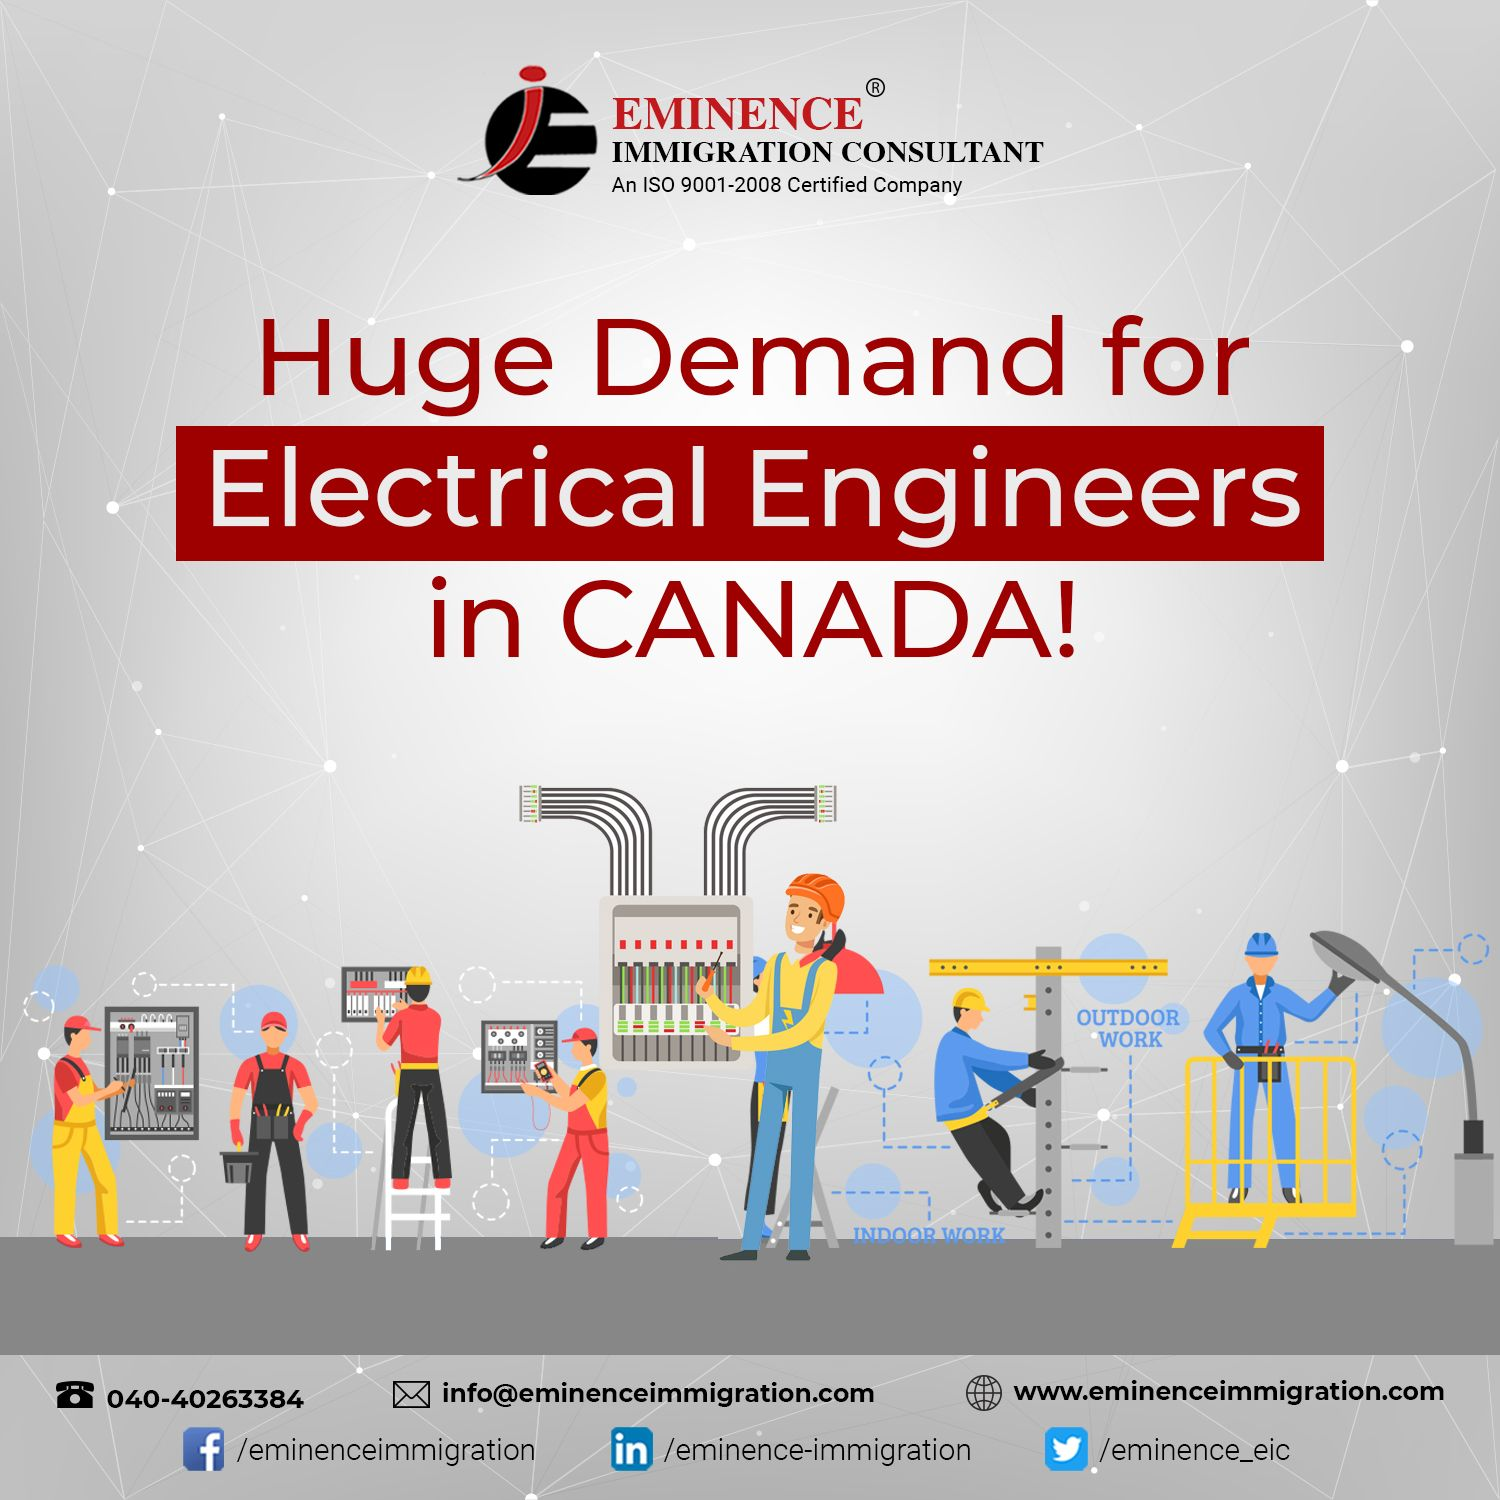 Huge demand for Electrical Engineers in #Canada! Good news for